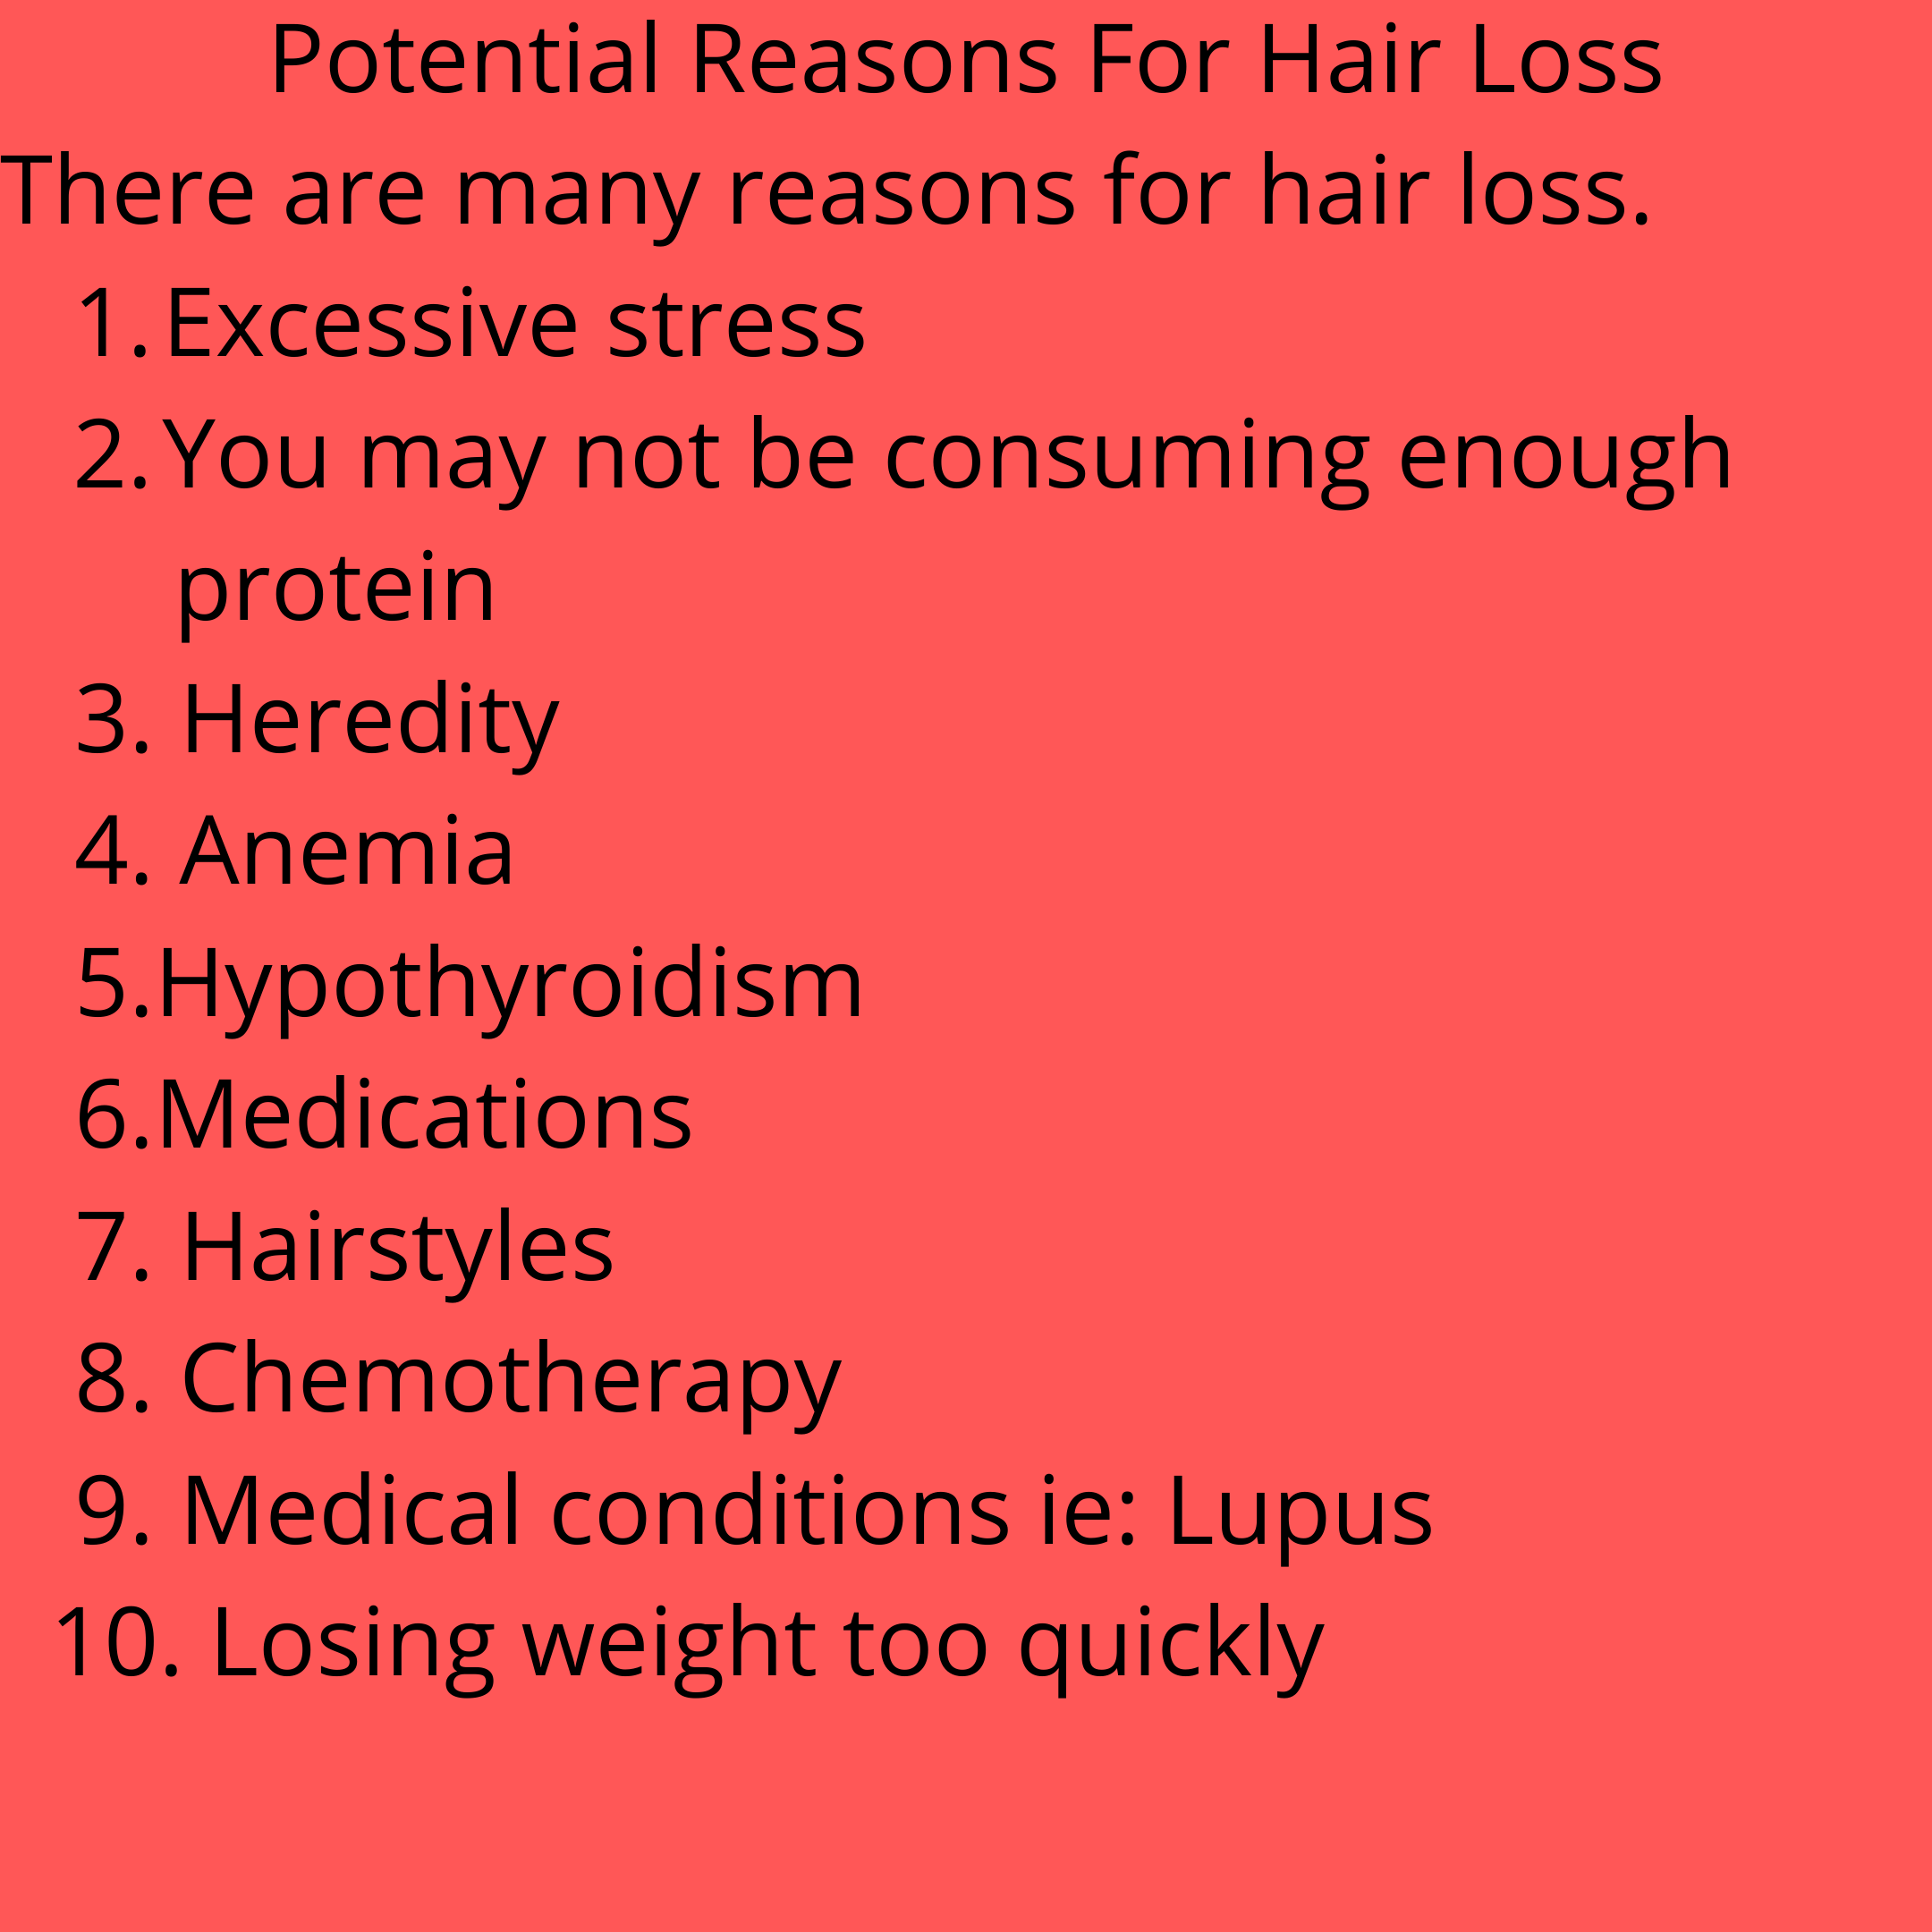 Potential Reasons For Hair Loss In 2020 Hair Loss Reasons Hair Loss Medical Conditions